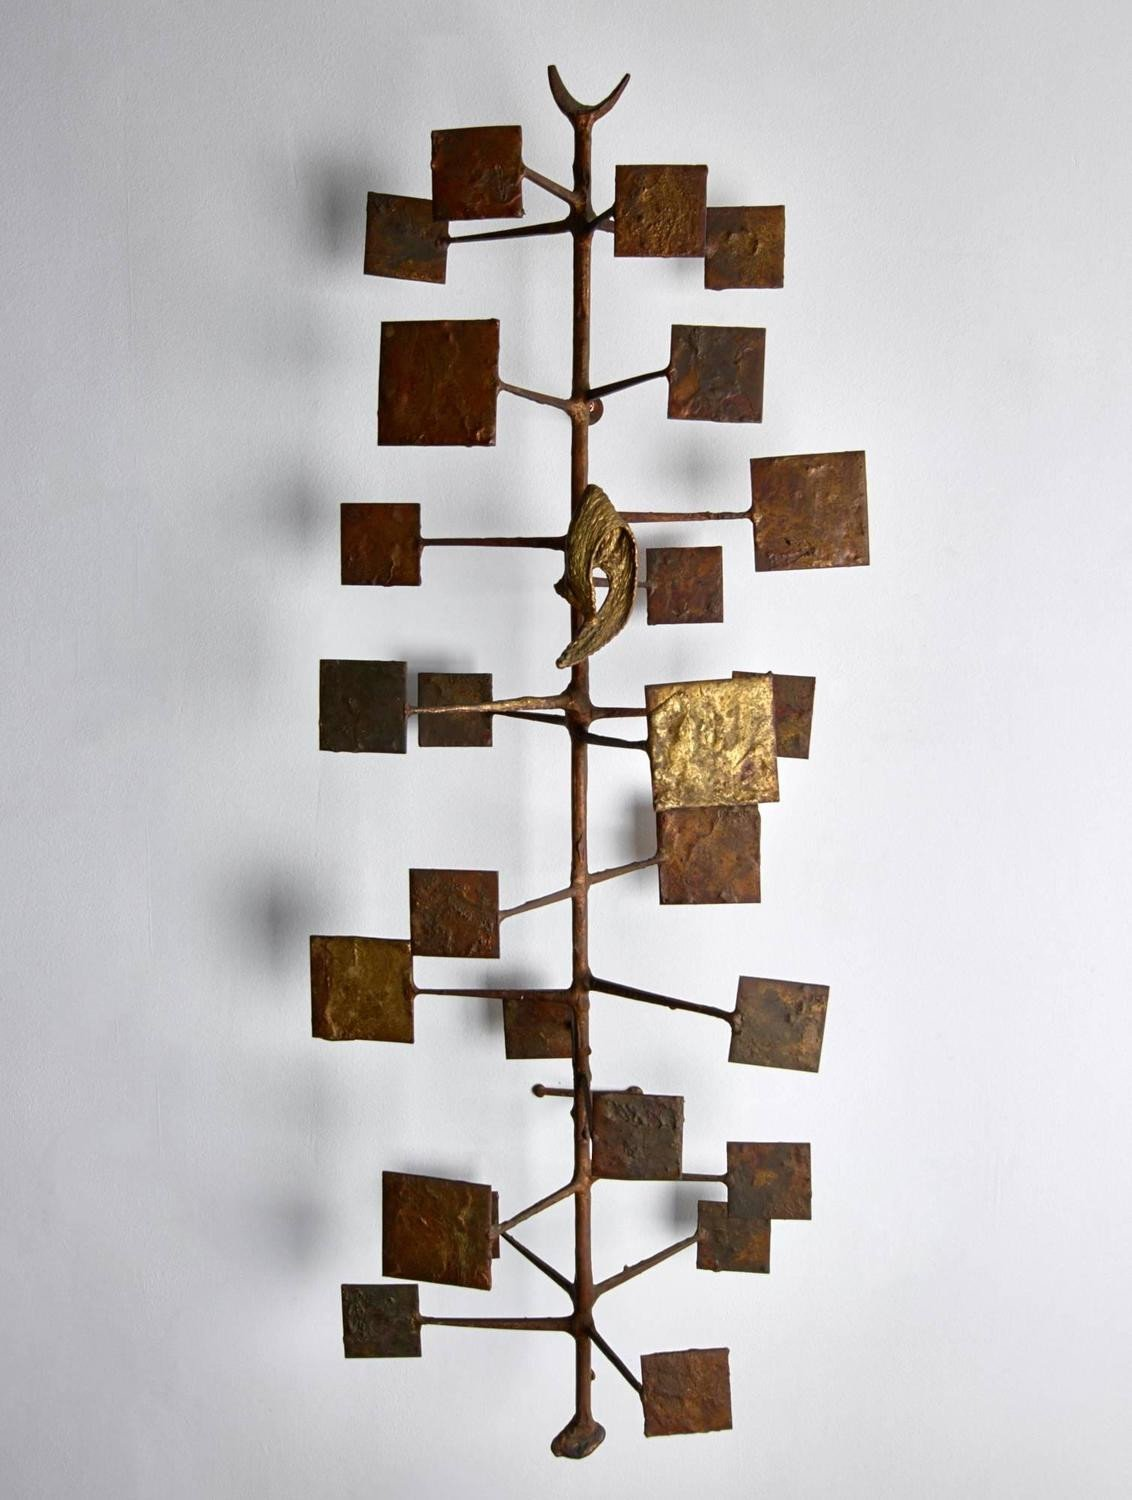 Harry Bertoia Untitled Multi-Plane circa 1950s